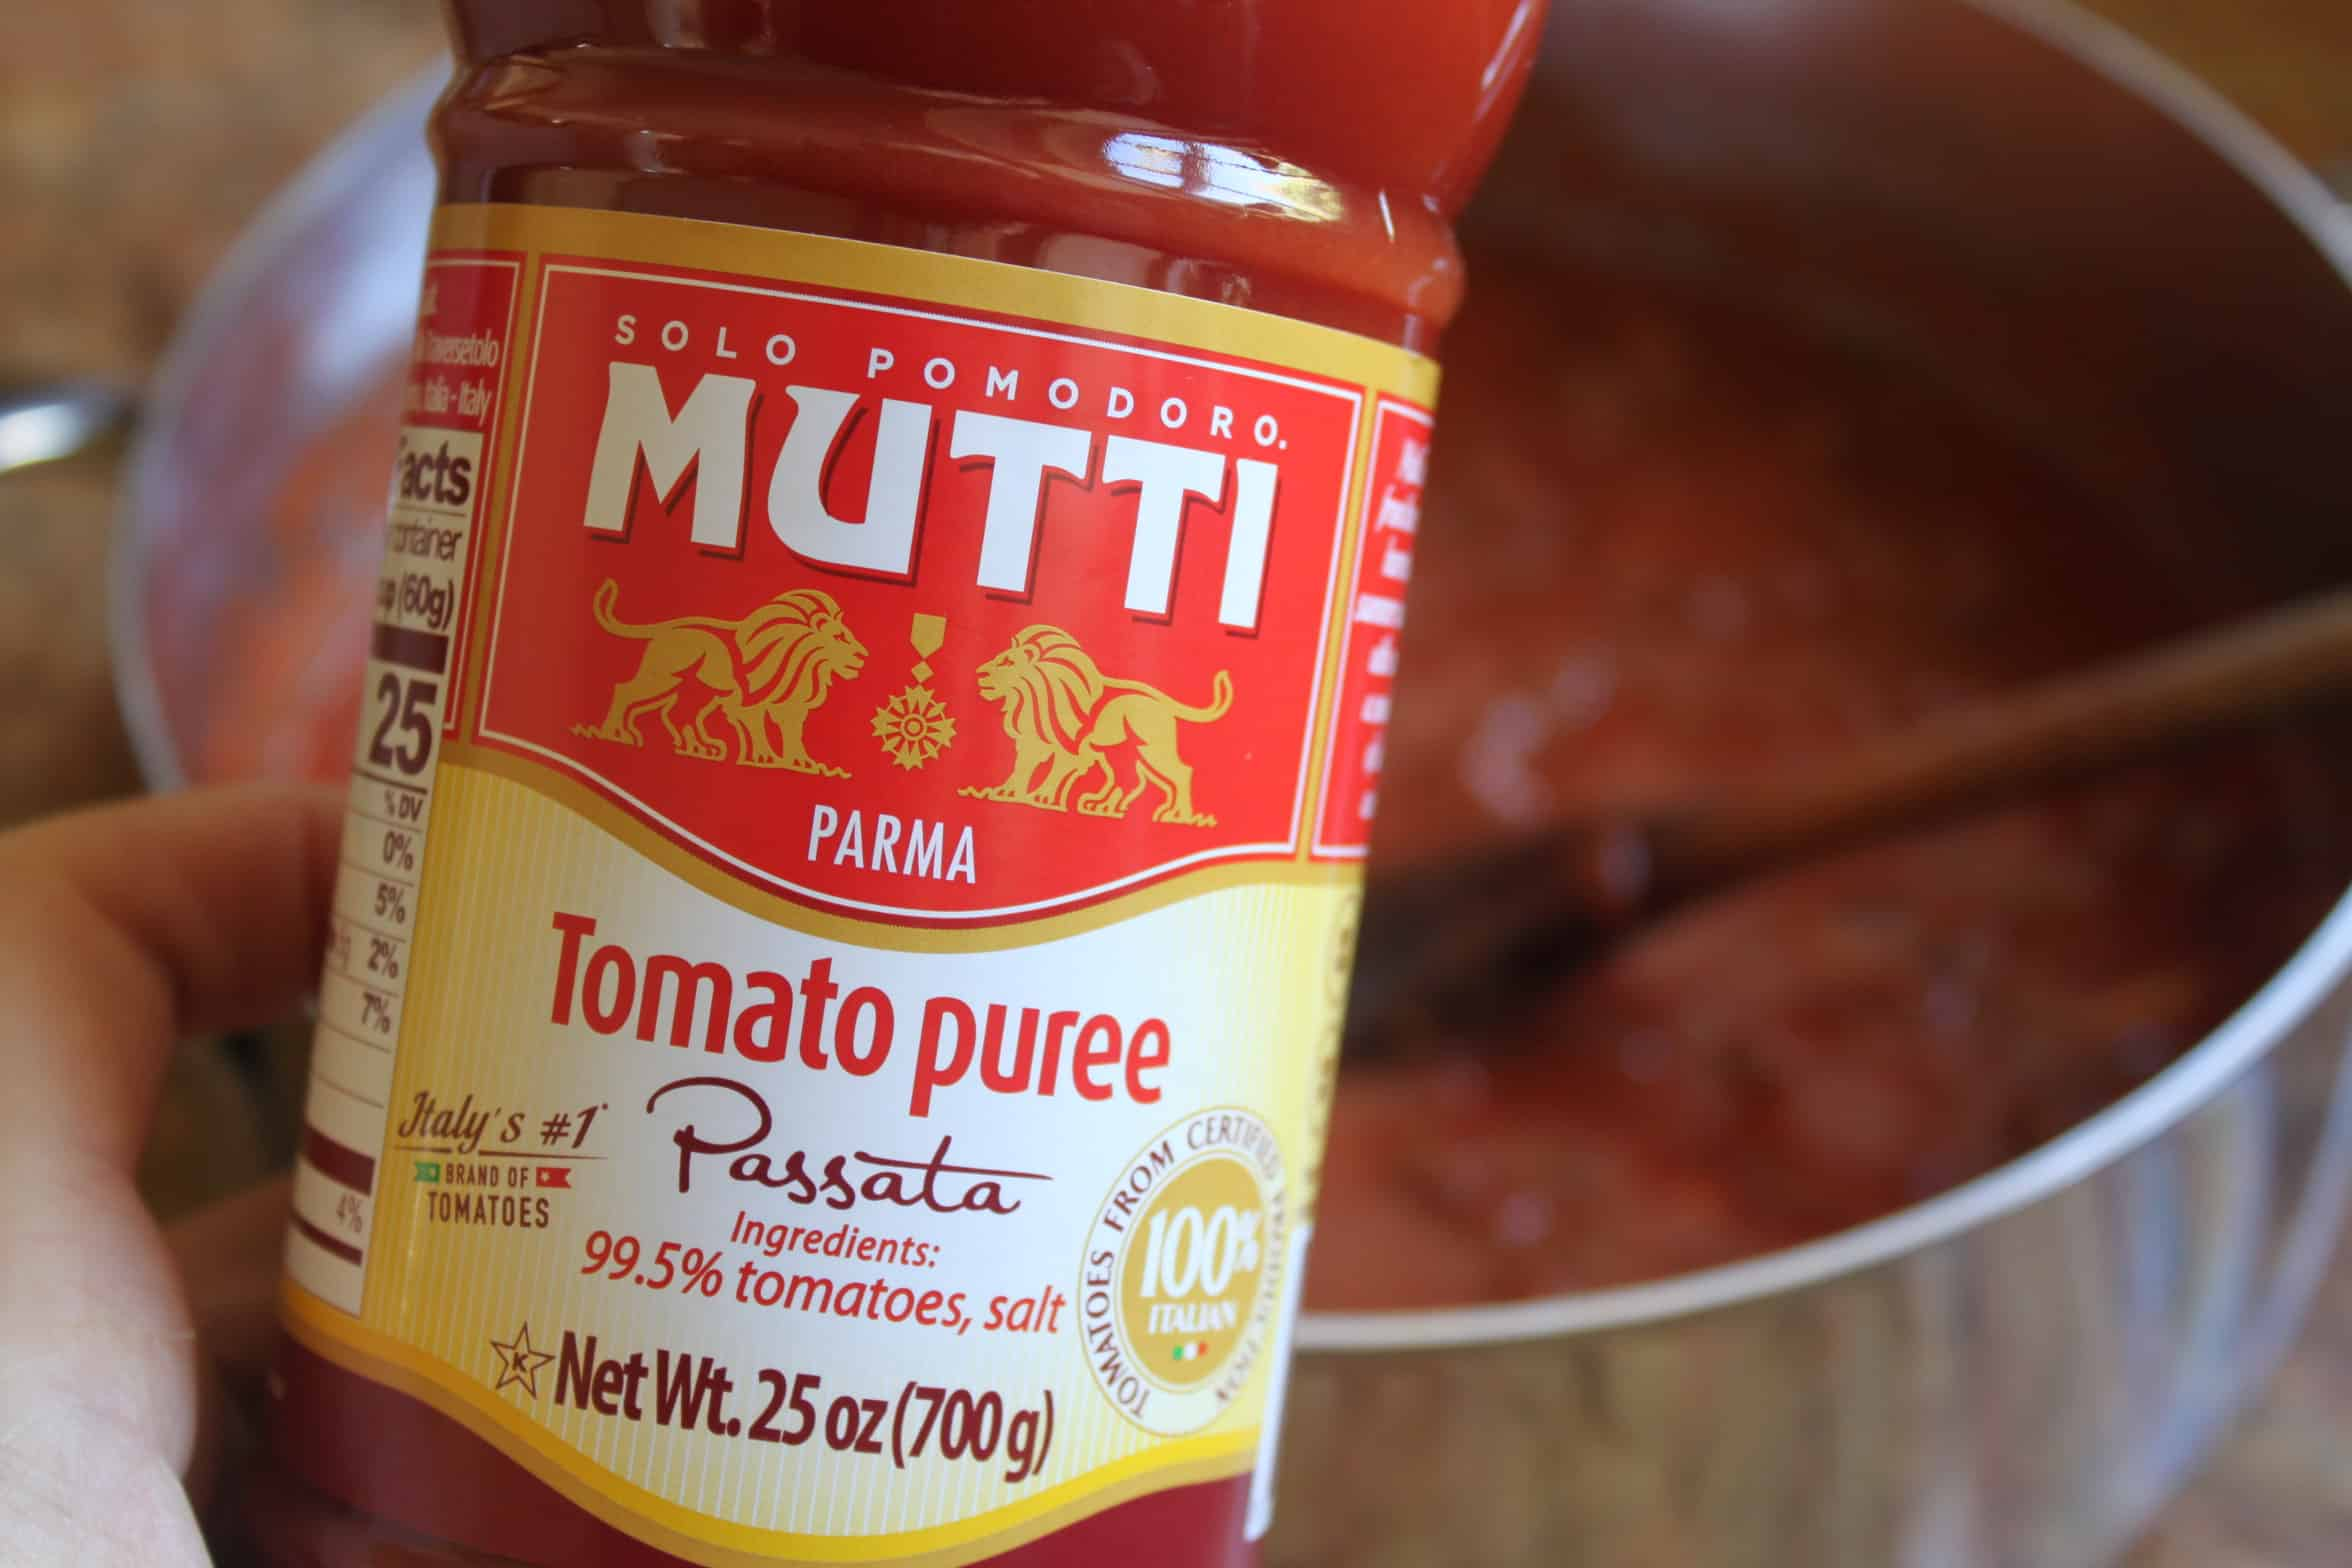 mutti tomato puree bottle in front of pan of sauce